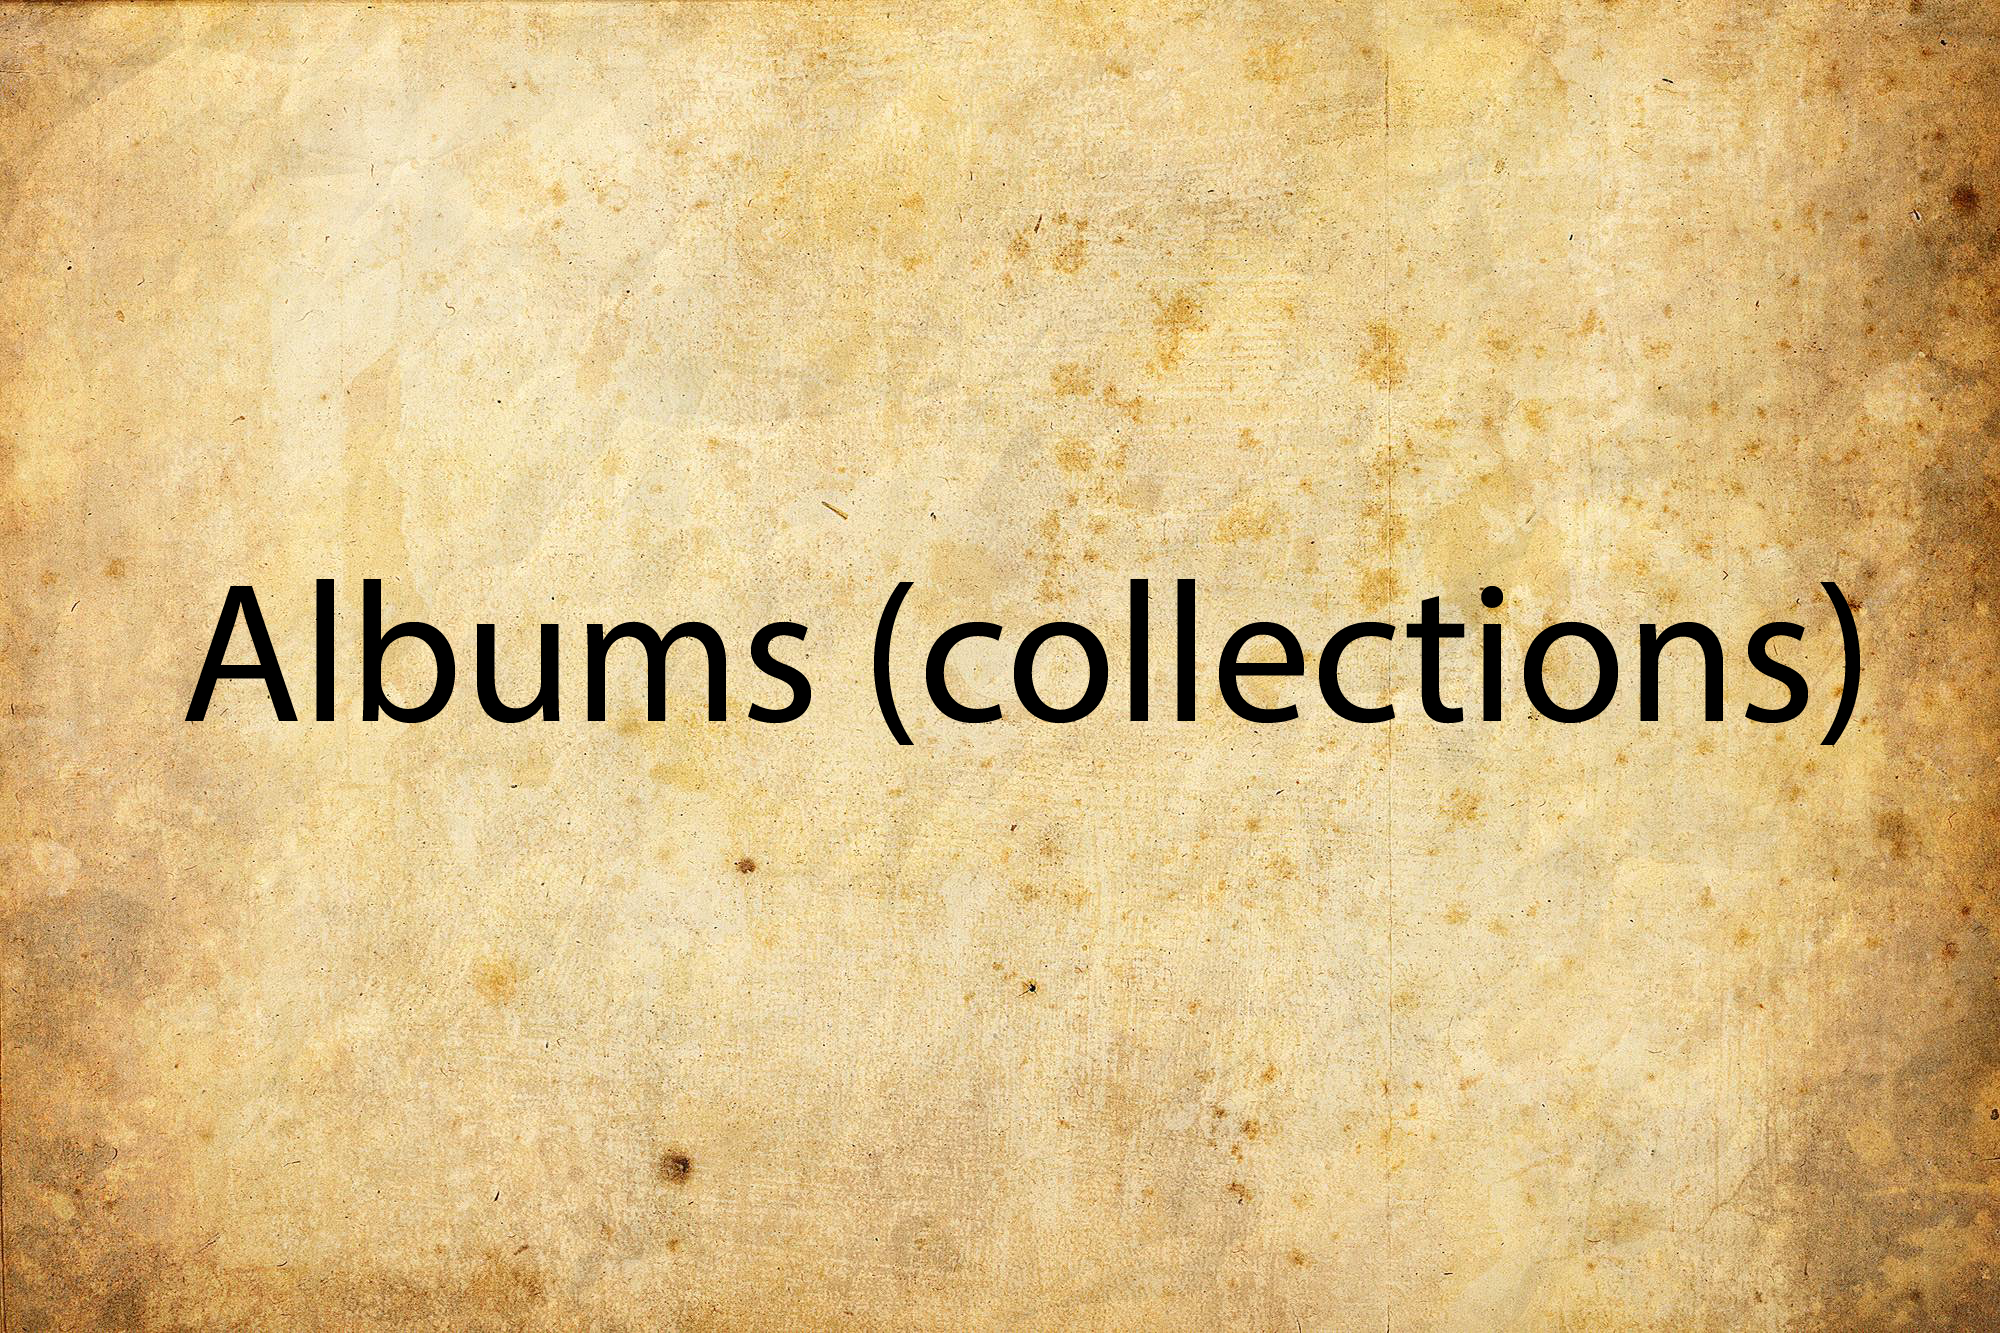 Albums (collections) for violin